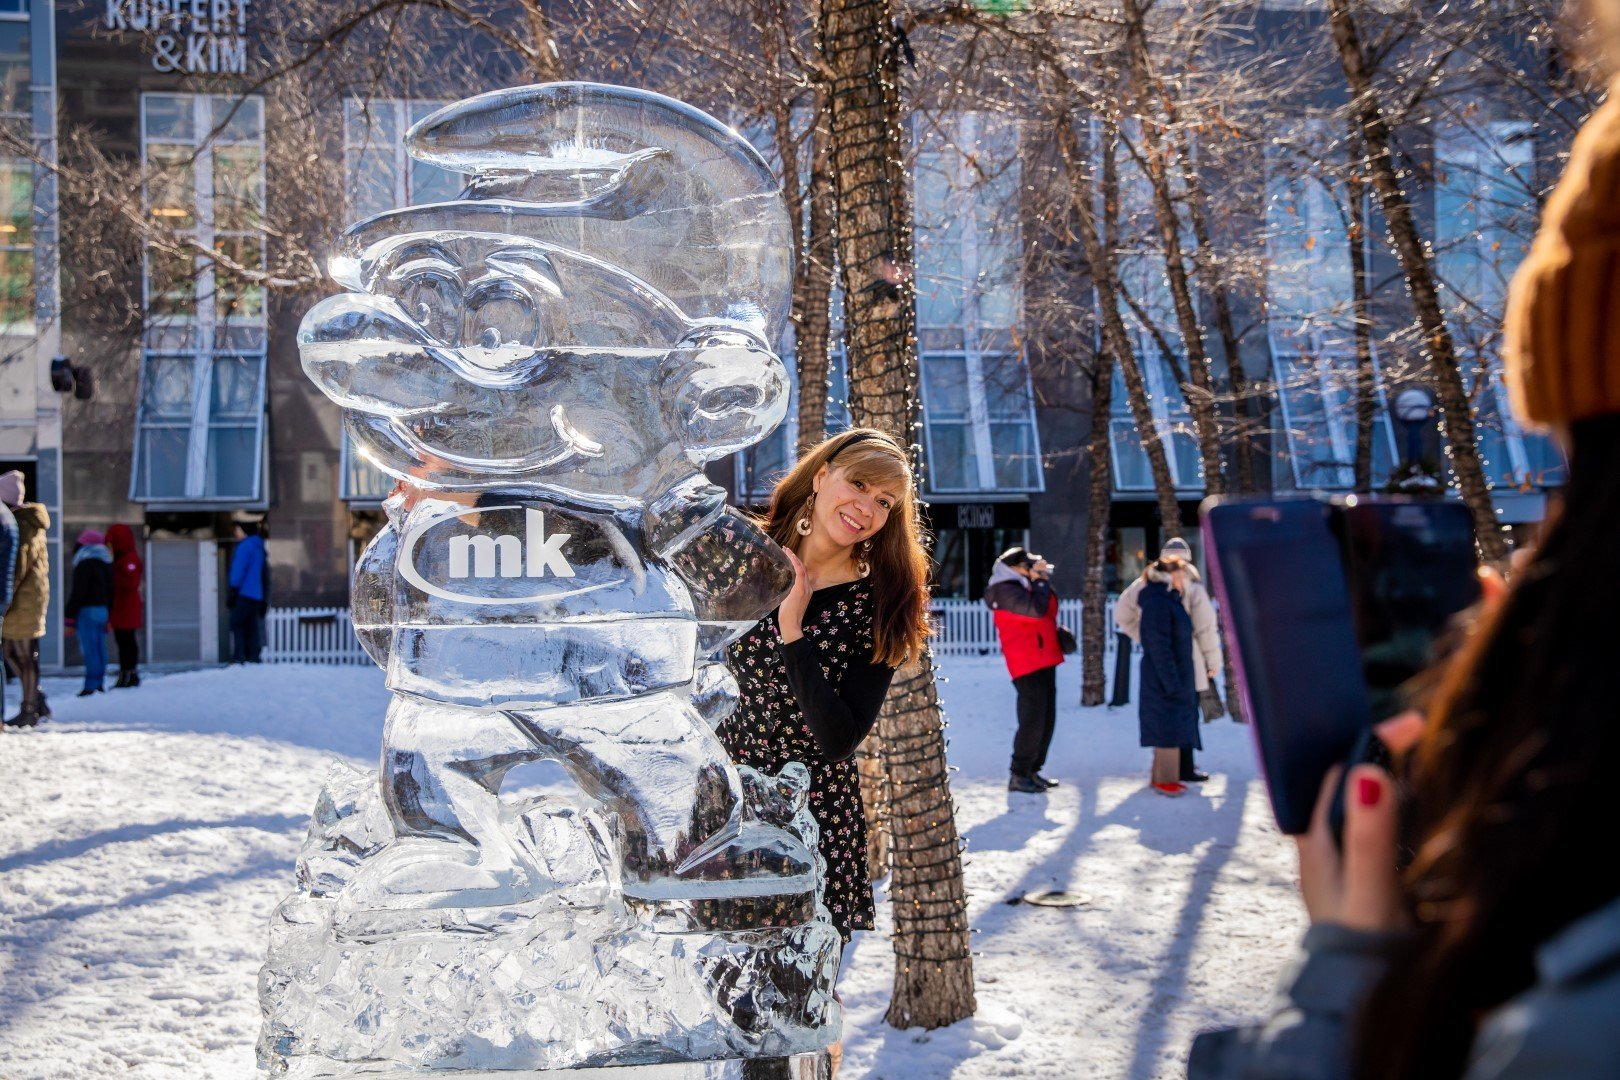 Person poses with a Smirf sculpture at Icefest 2020